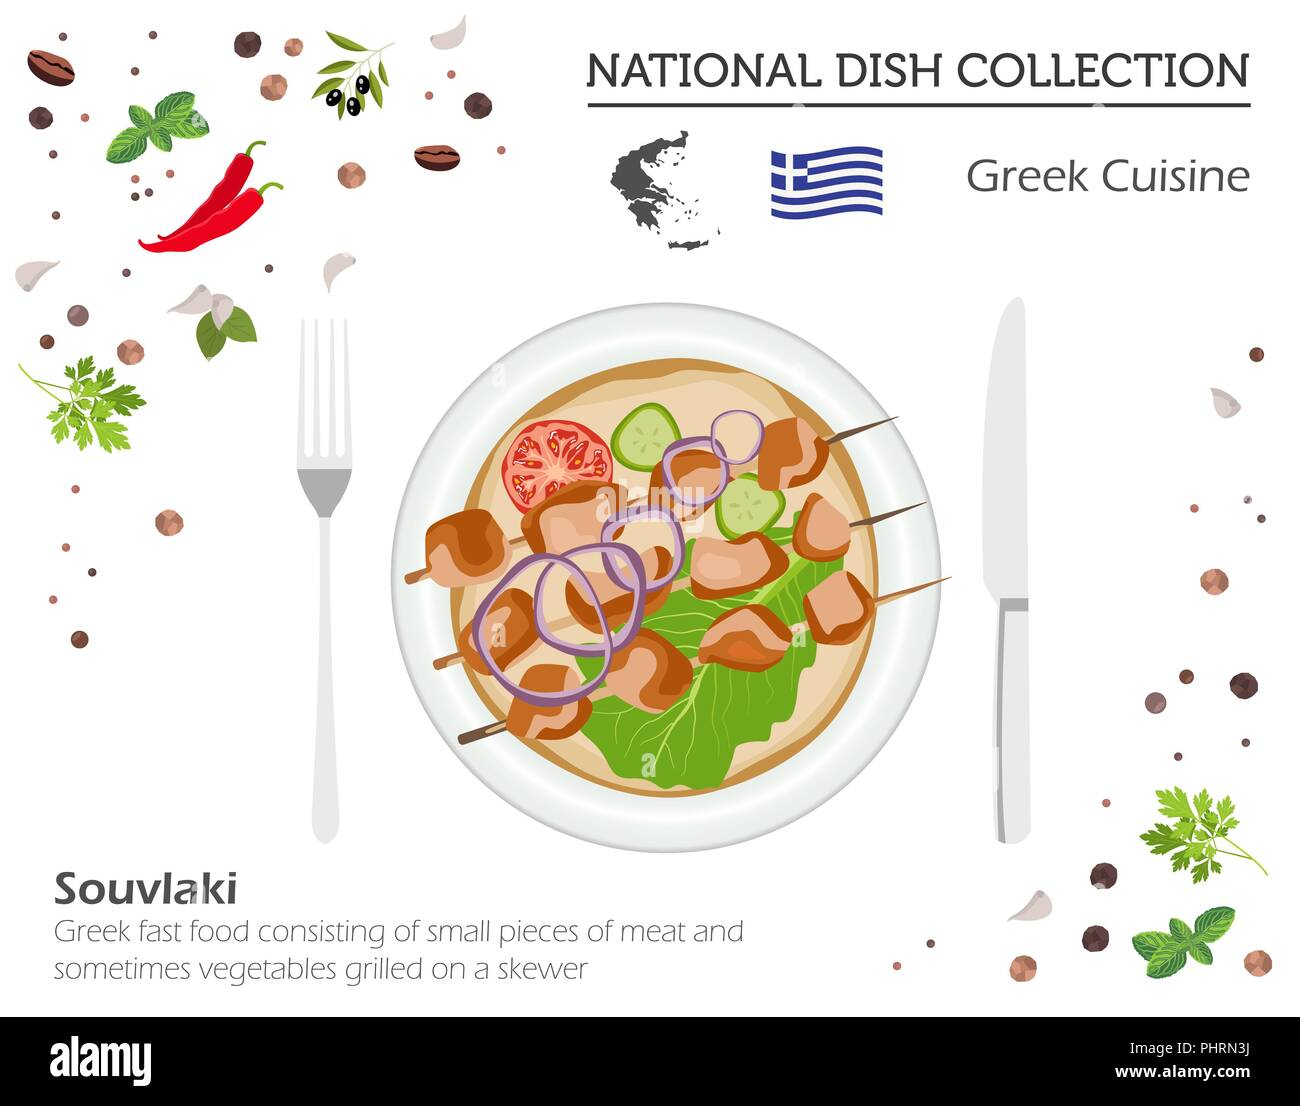 Greek Cuisine. European national dish collection. Souvlaki isolated on white, infographic. Vector illustration - Stock Vector